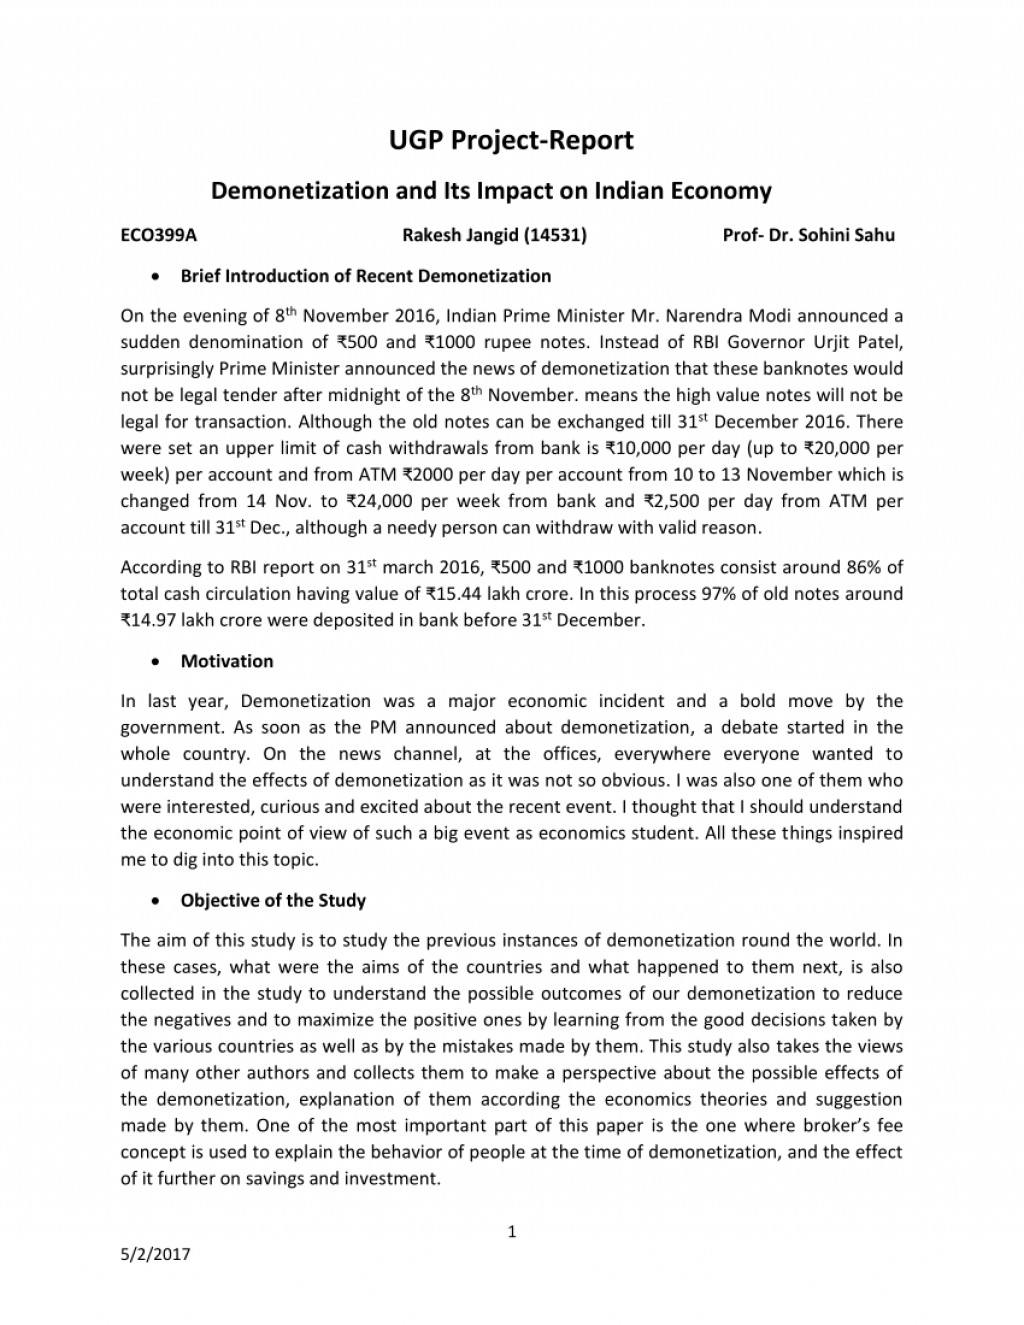 001 Research Paper Largepreview Demonetization And Its Impact On Indian Frightening Economy Large